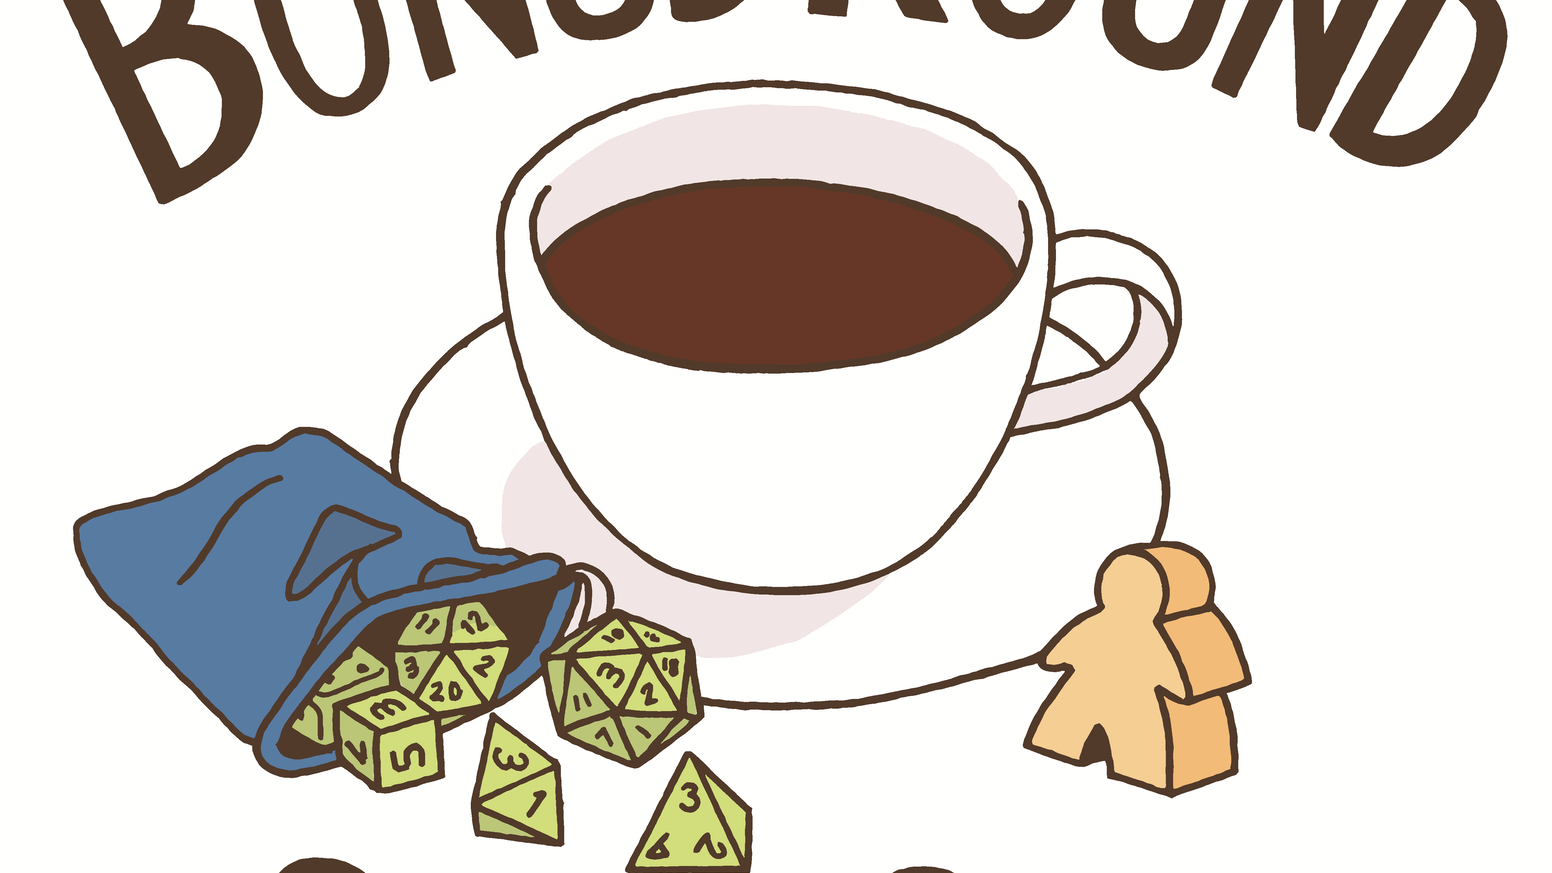 A board game cafe opening in 2016, committed to inclusivity and bringing gaming to the masses. There's a game for everyone!